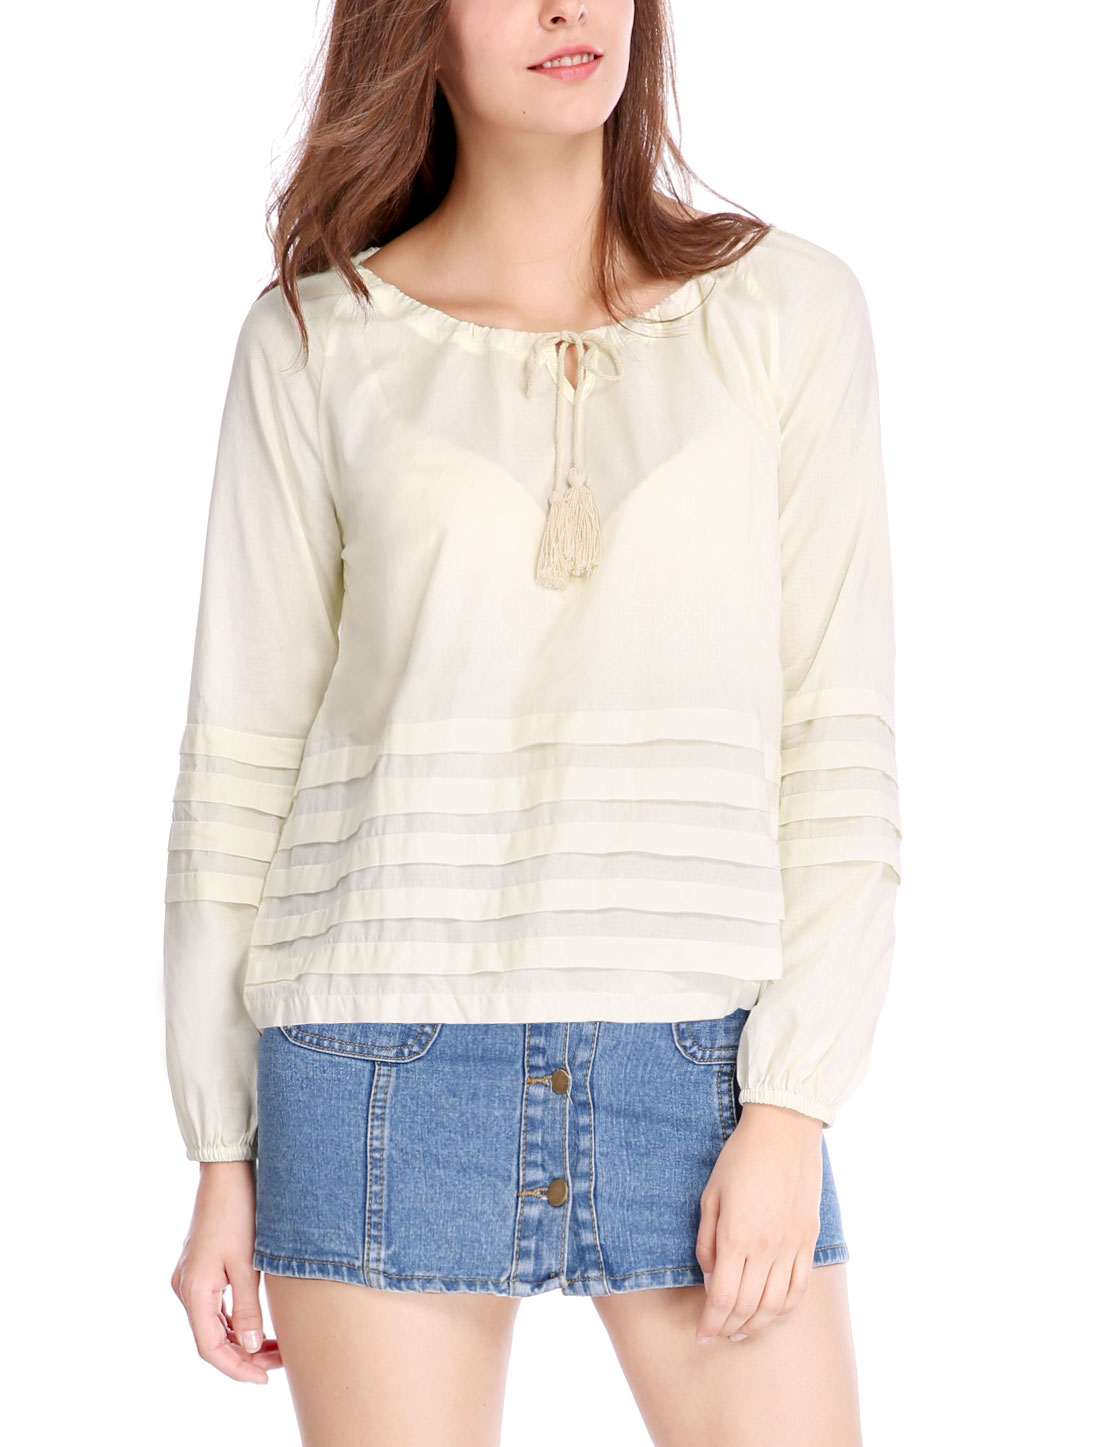 Women Tassel Tie Front Shutter Pleats Long Sleeves Blouse Ivory L